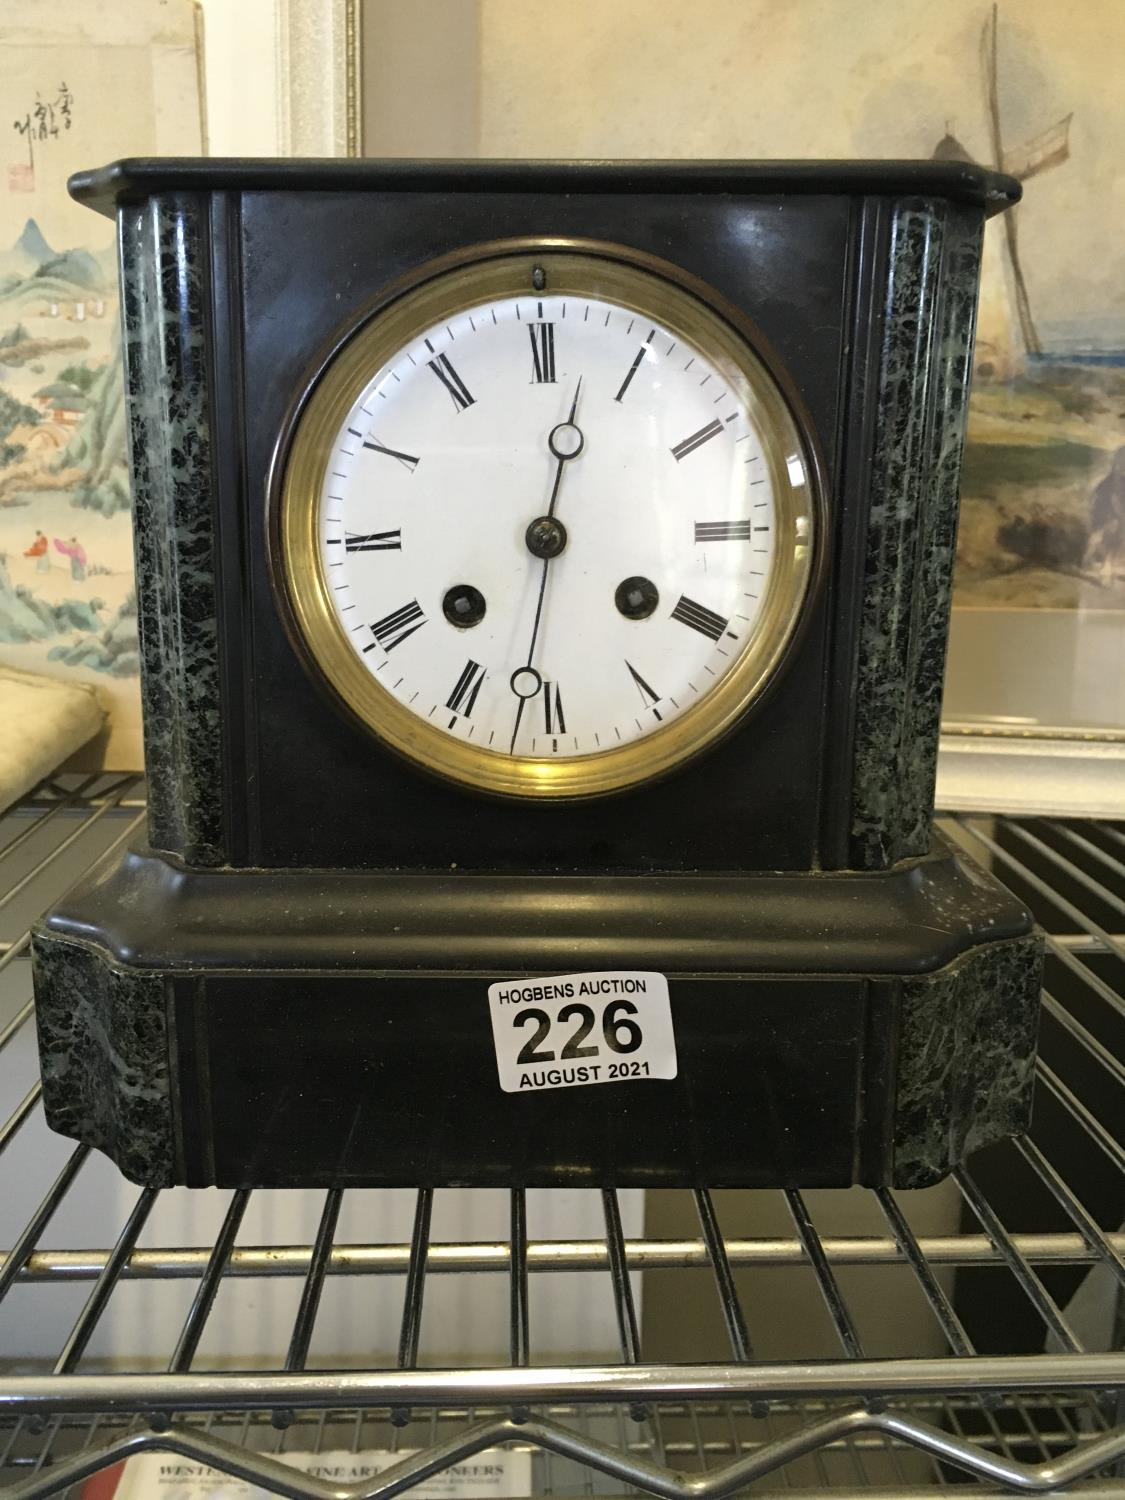 19c slate and marble mantle clock with an 8 day time piece striking on a bell, makers mark to